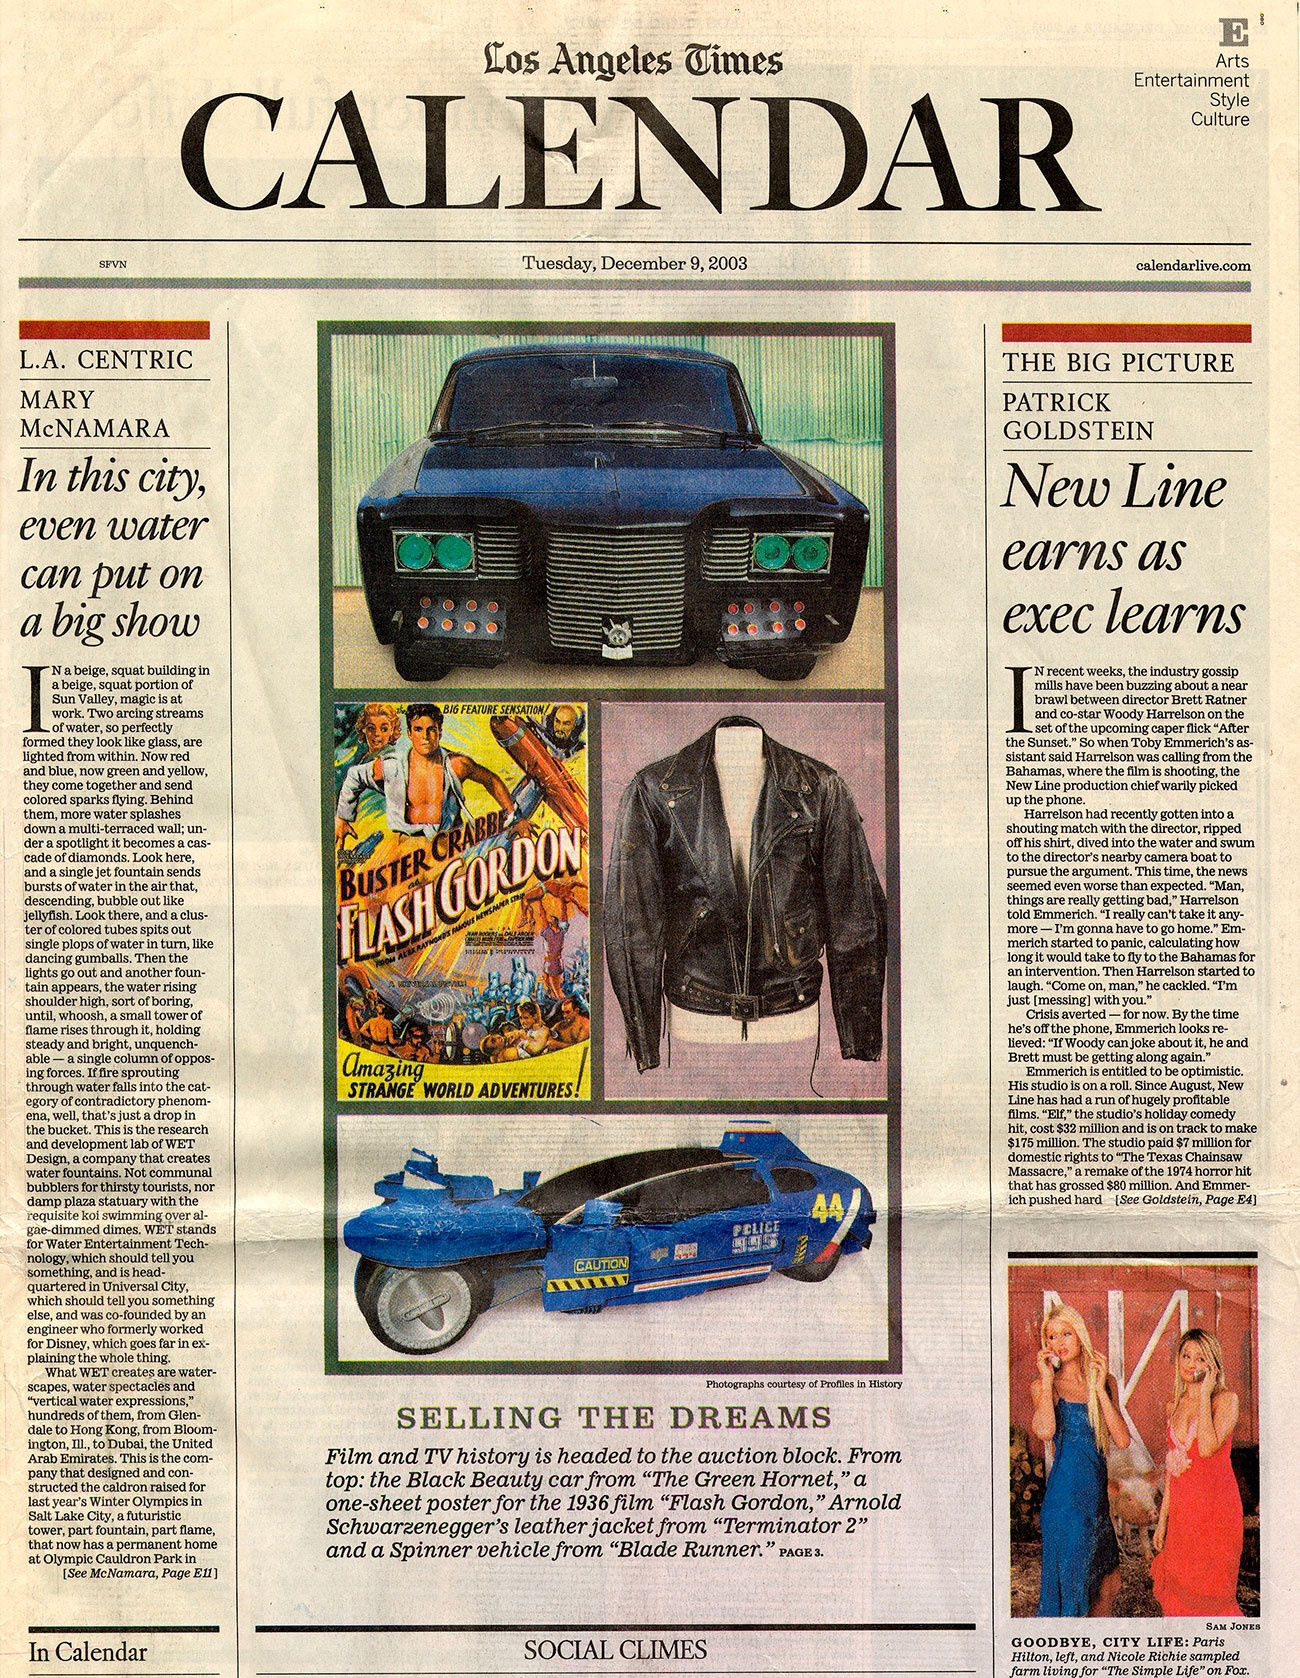 la times calendar, selling the dreams, photo of flash gorden, the green hornet, jacket from terminator 2, a blue vehicle from blade runner